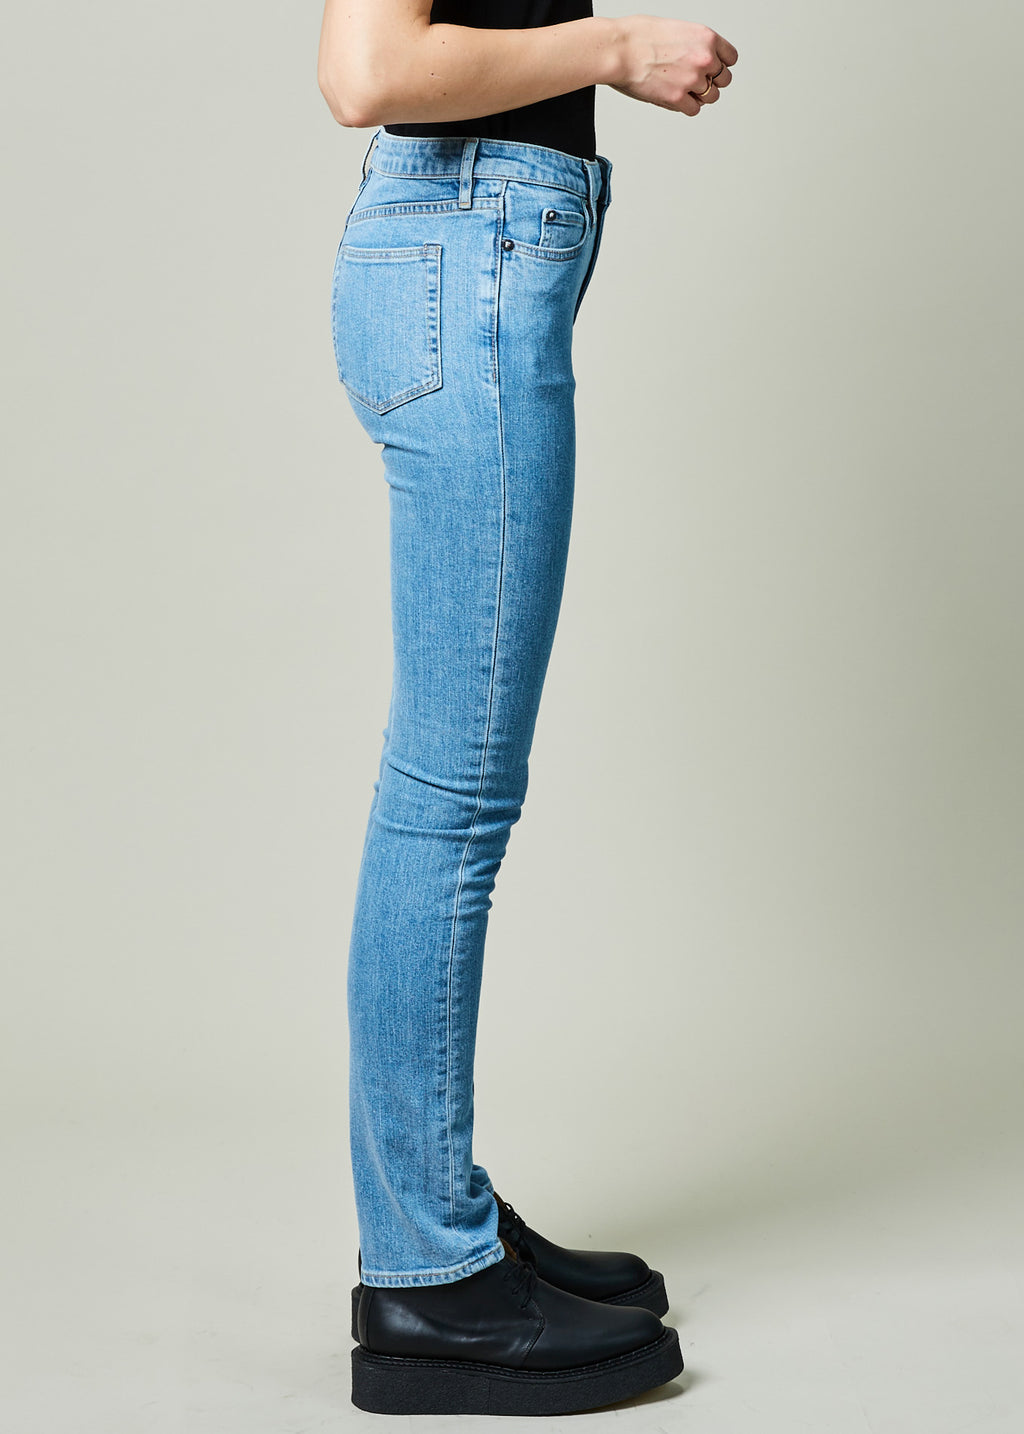 fdb57afec Holt Mid Rise Jean in Mid Indigo Wash by Simon Miller | Womens ...